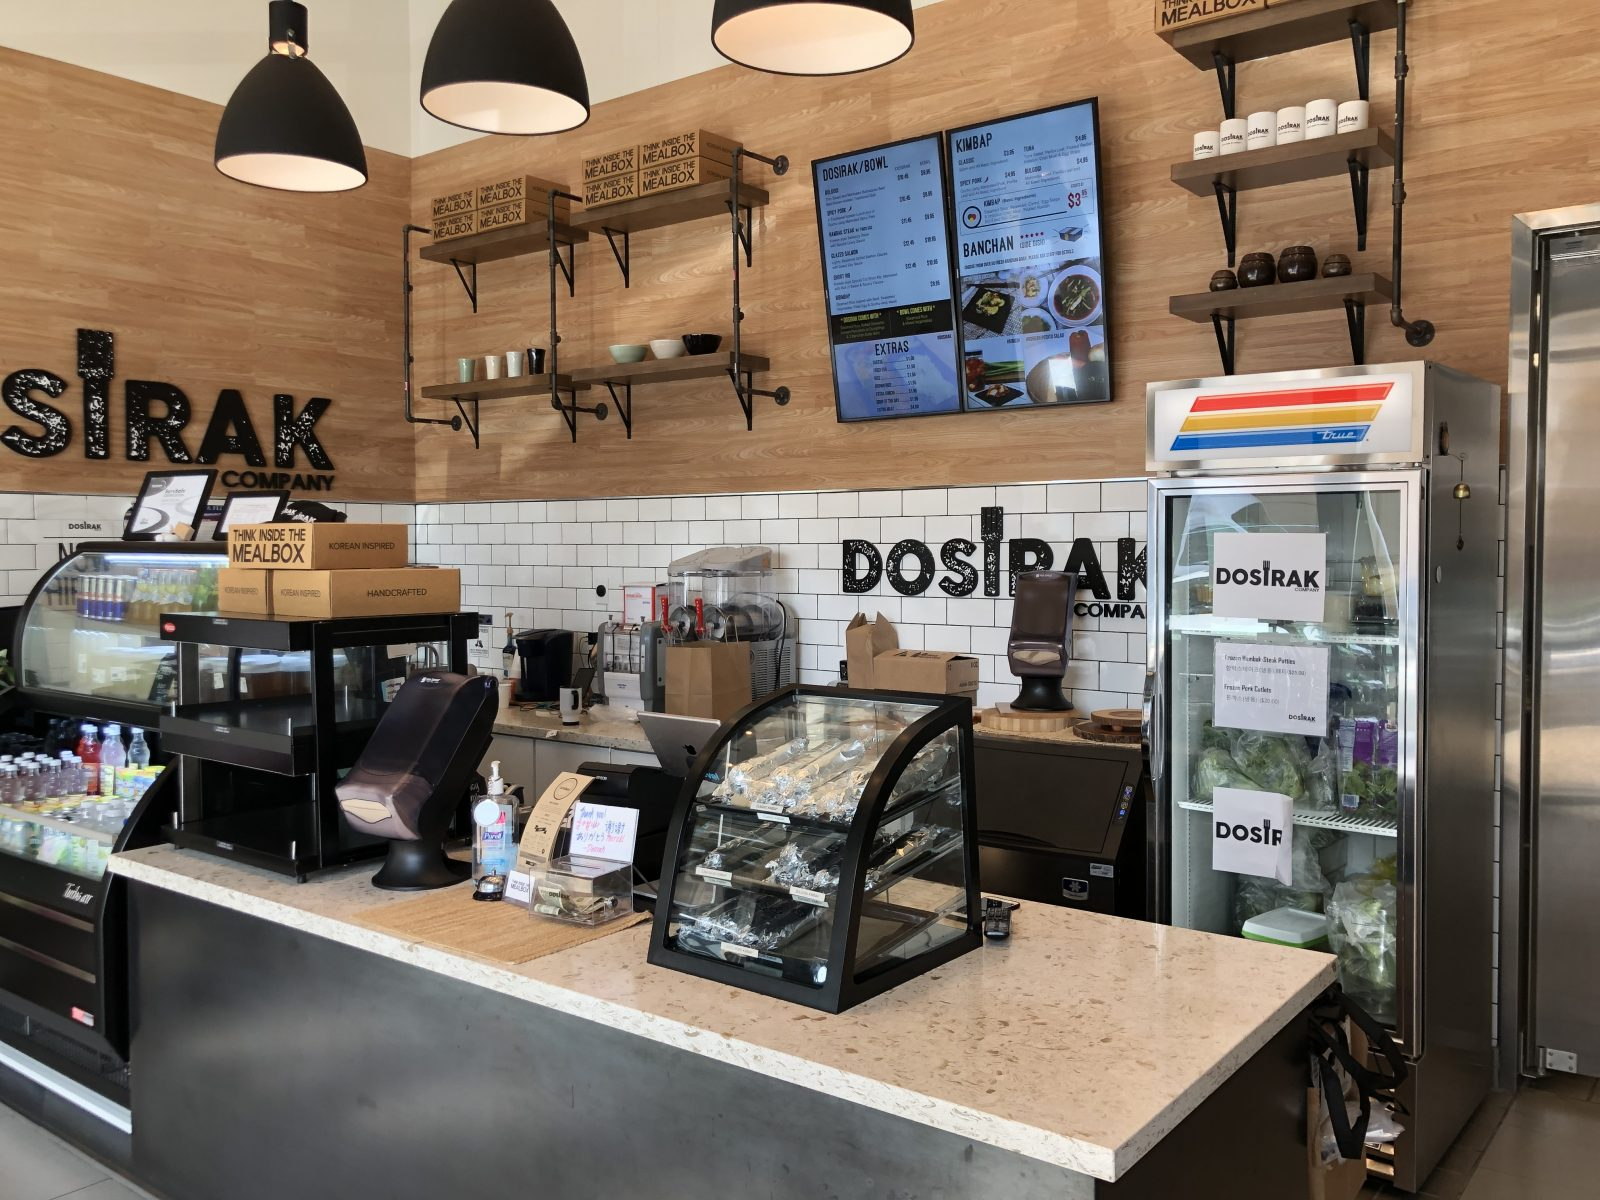 Dosirak Company in Irvine California - Korean Boxed Lunches